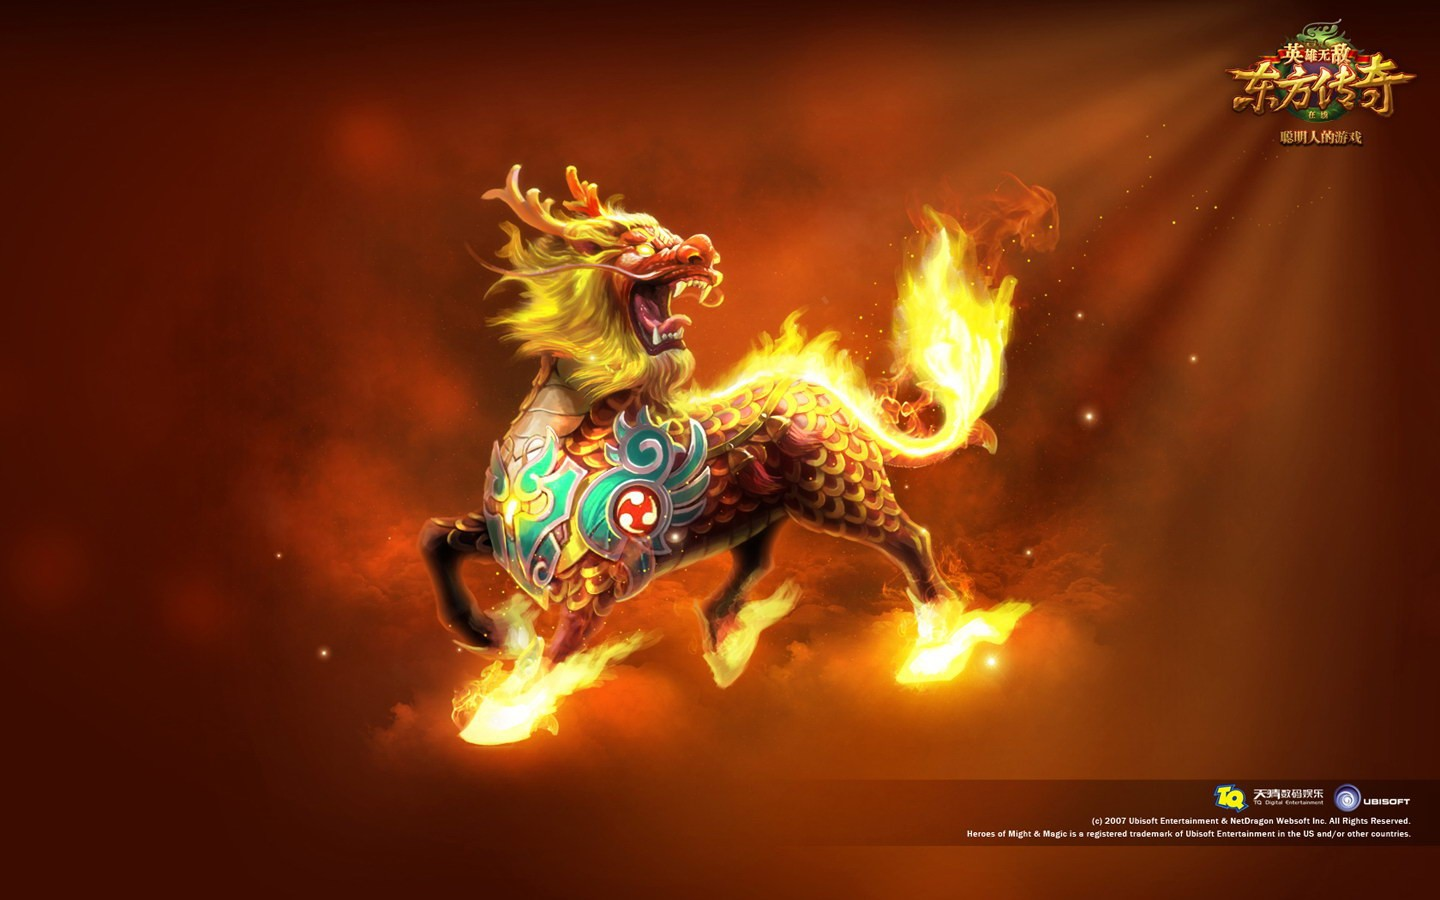 Fantasy_The_horse_with_a_dragon_s_head_041469_